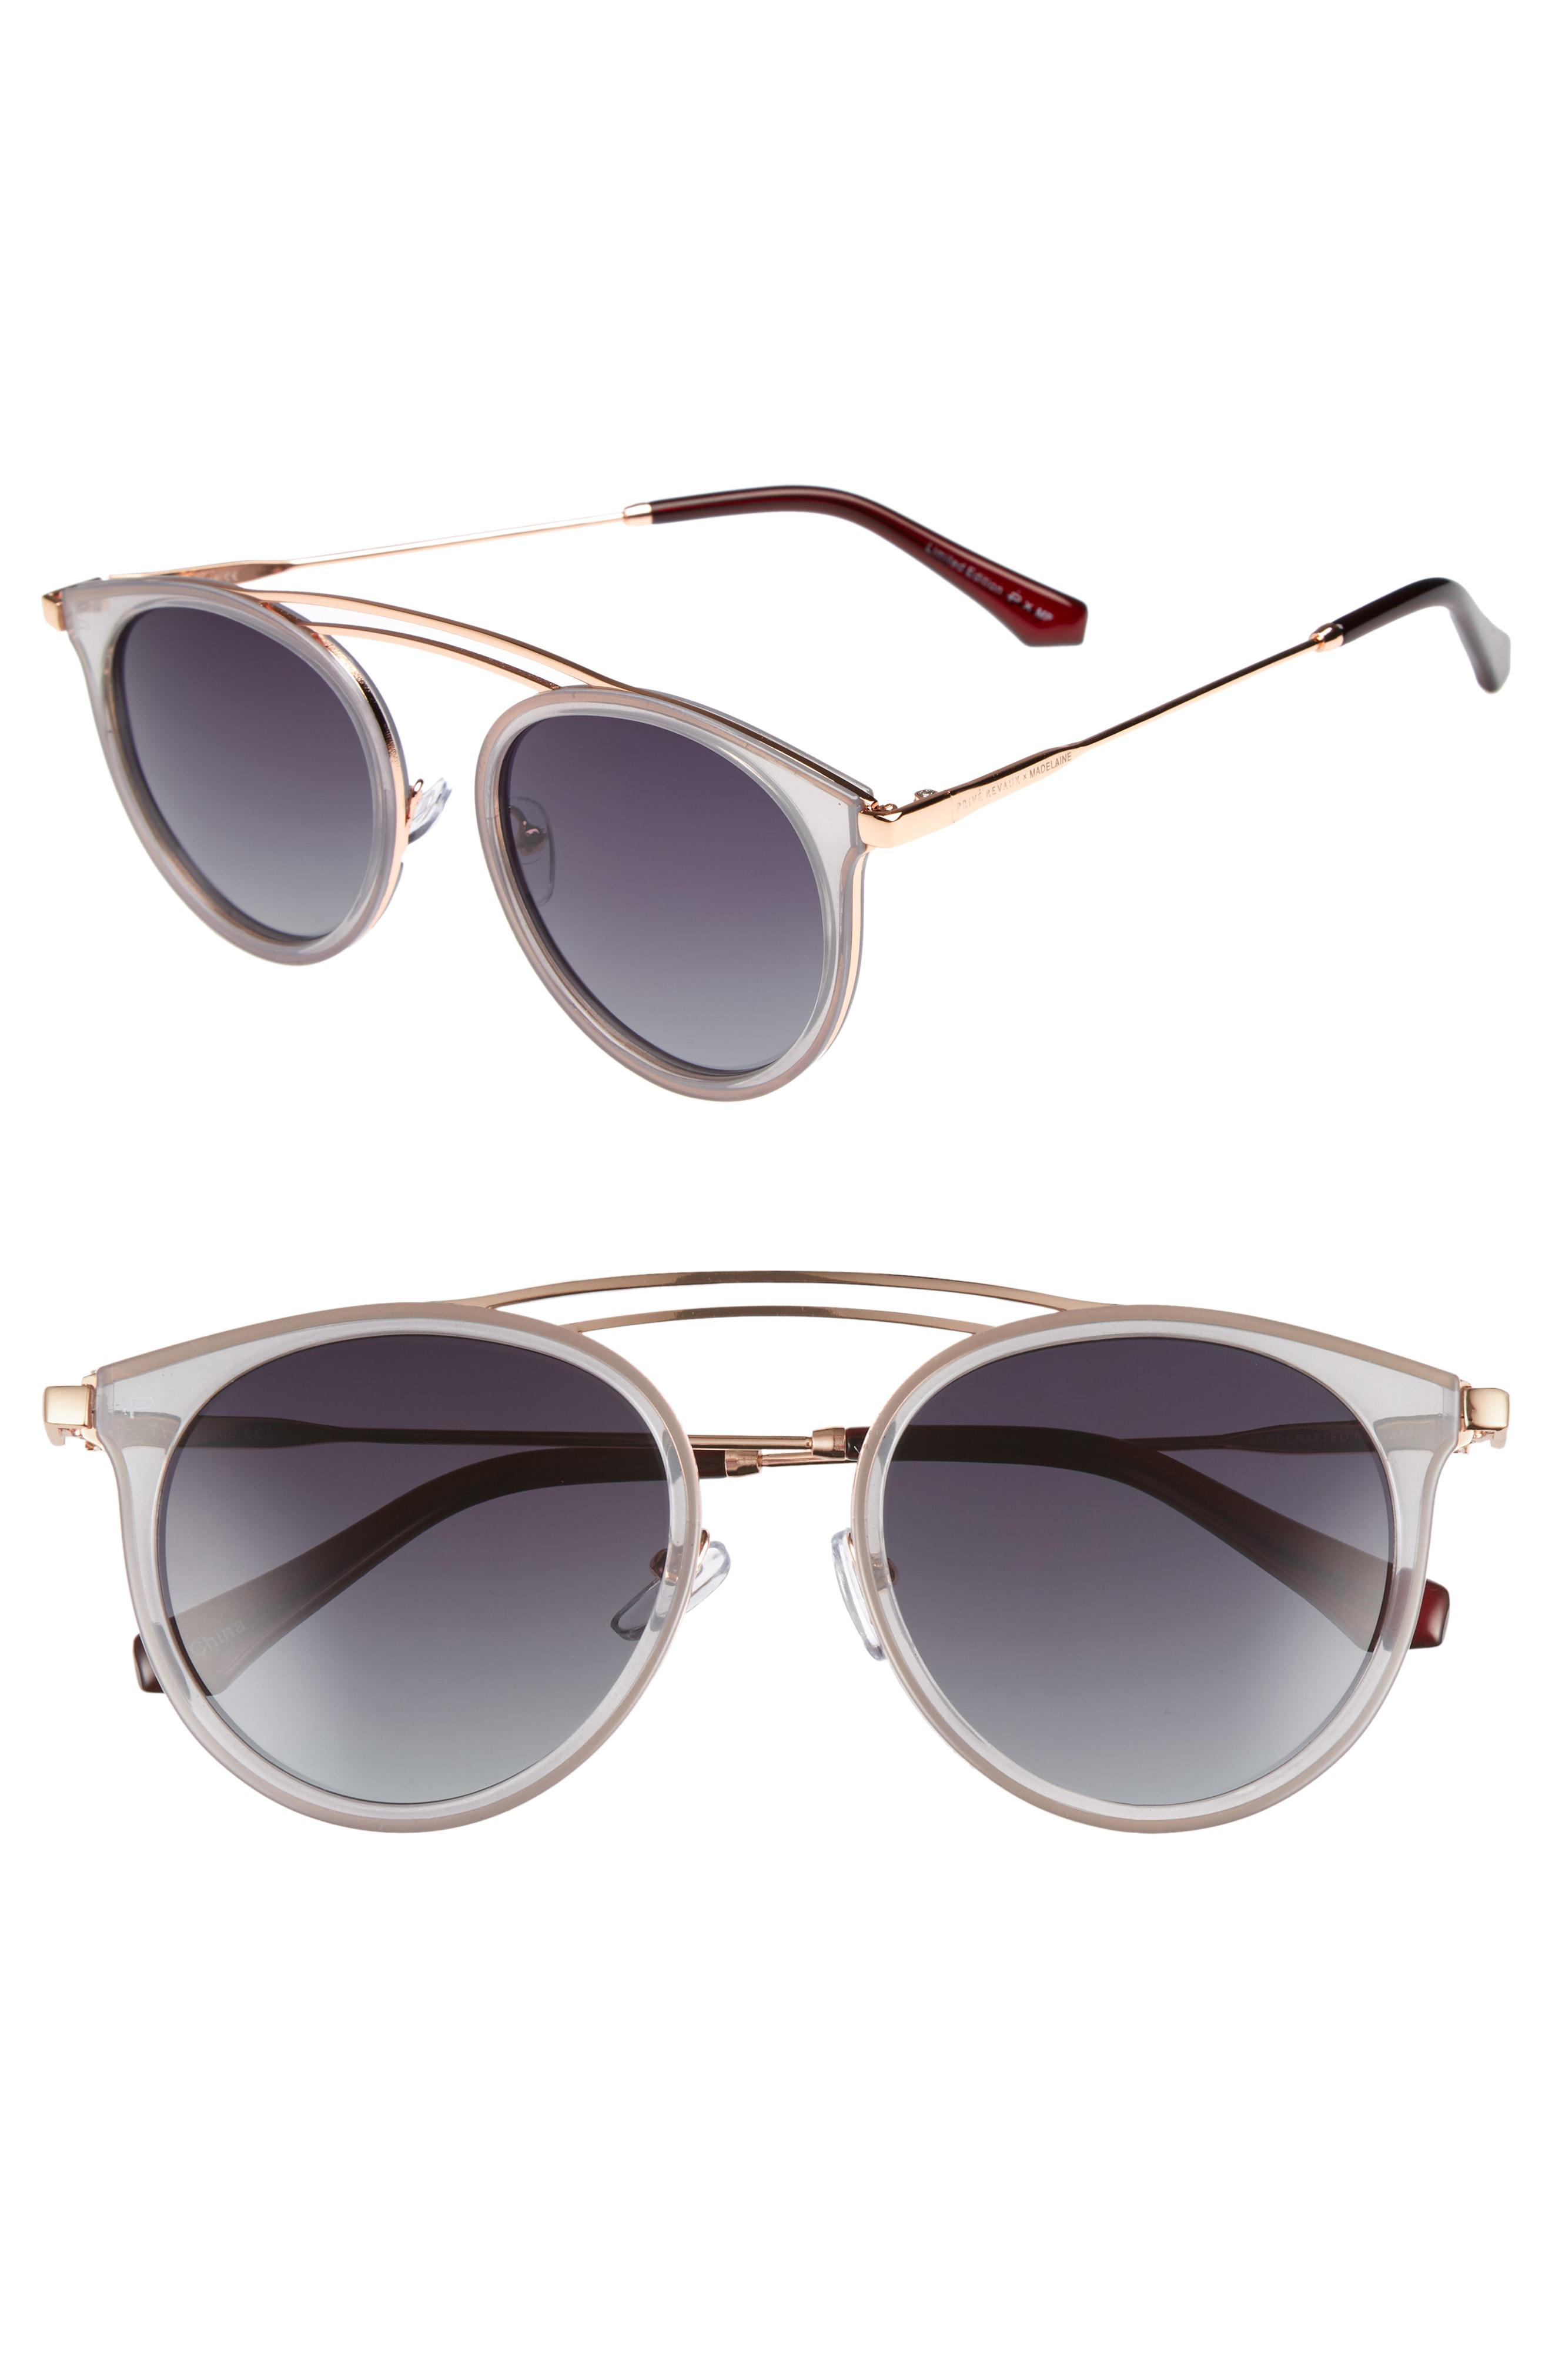 f4739ade765 Lyst - Privé Revaux X Madelaine Petsch The Rogue 50mm Sunglasses -